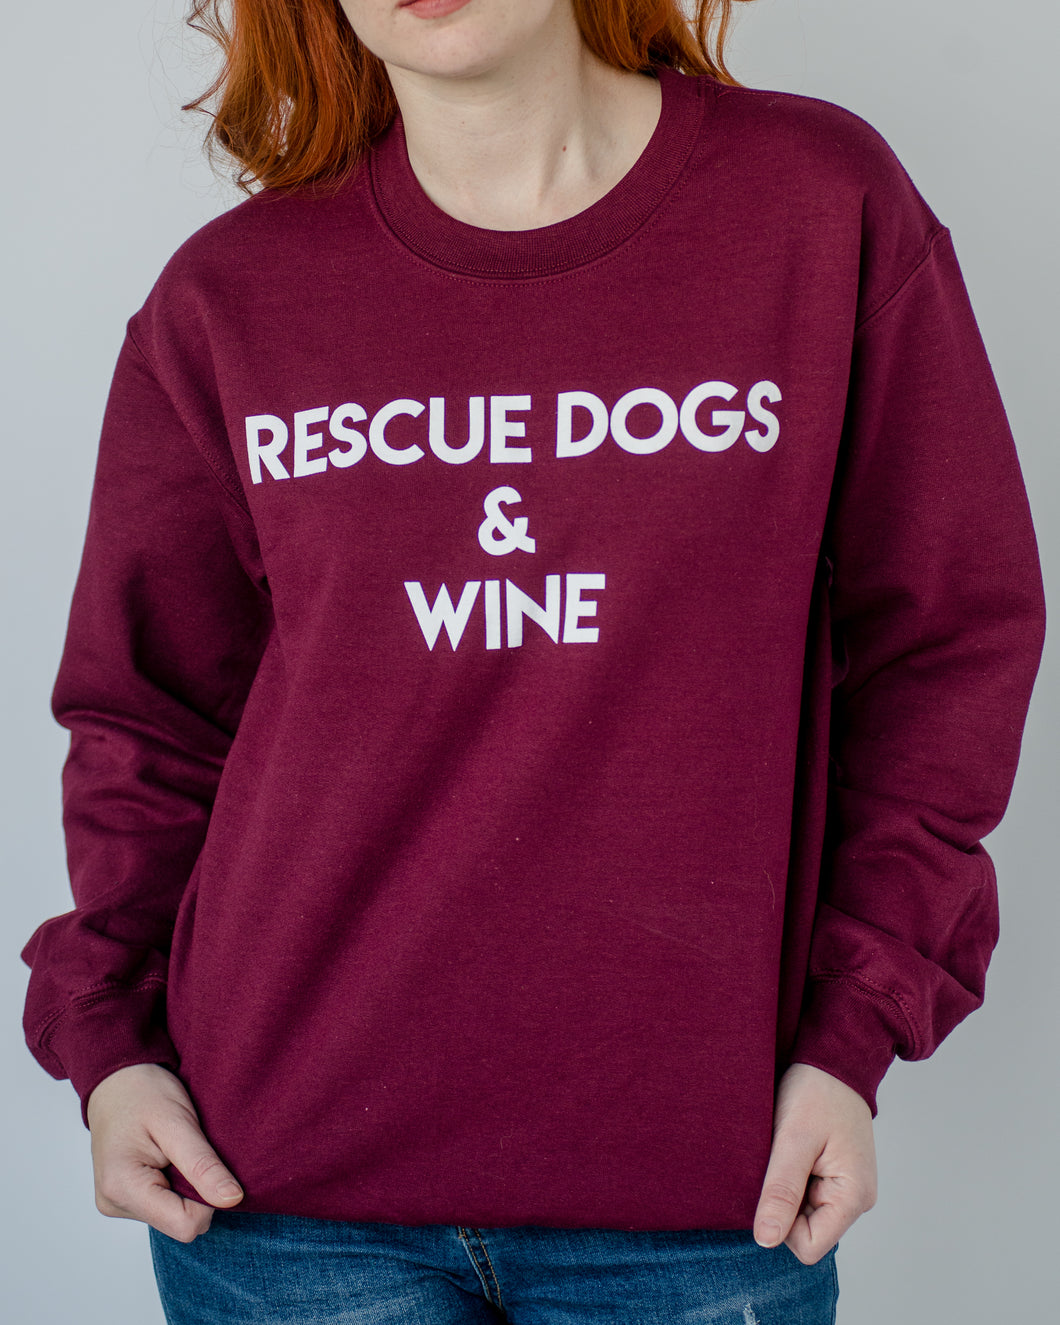 Rescue Dogs & Wine Sweatshirt